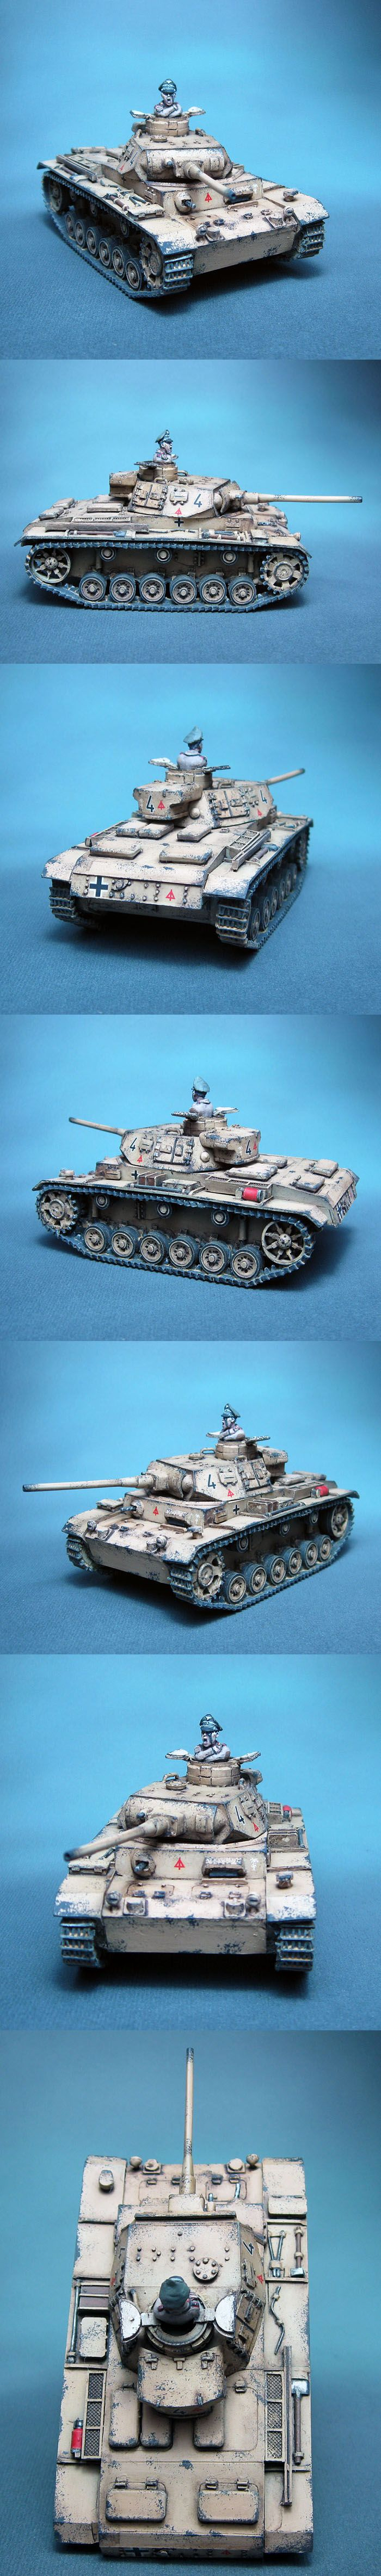 PzKpfw III Ausf J 15. PzD Afrika Korps Scale: 1/56(28mm) Manufacturer: Warlord Games UK Game: BOLT ACTION Painted by: OMP(Olsianon Miniatures Painting)